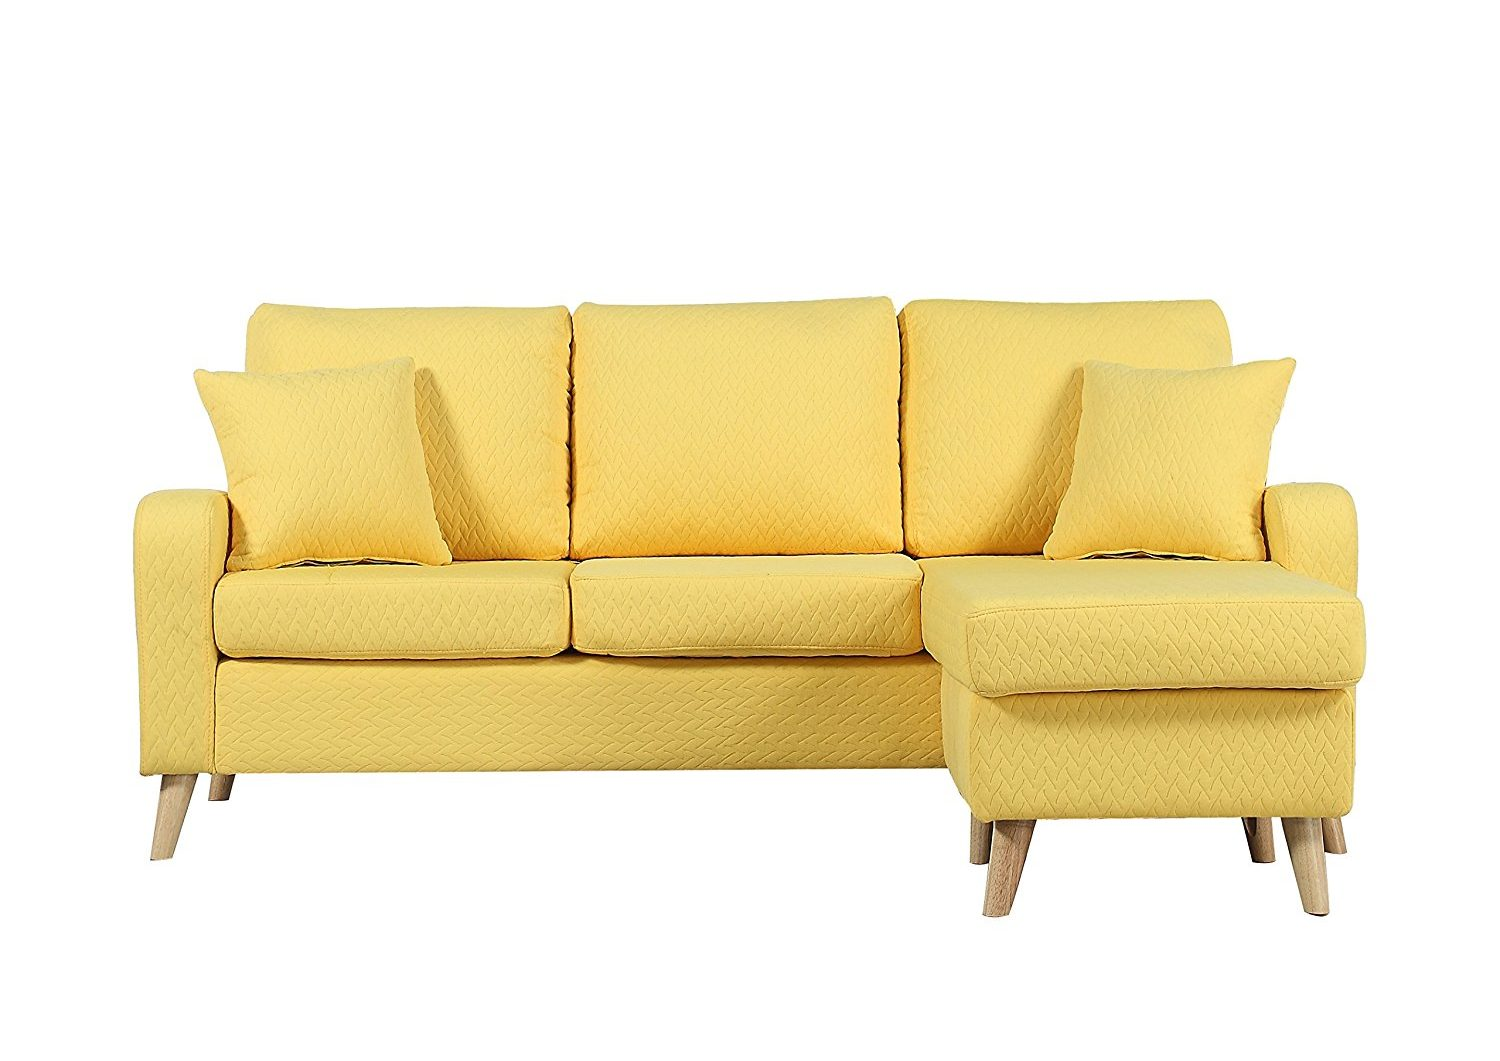 furniture remodel couches with elegant sofas about sofa and ideas couch